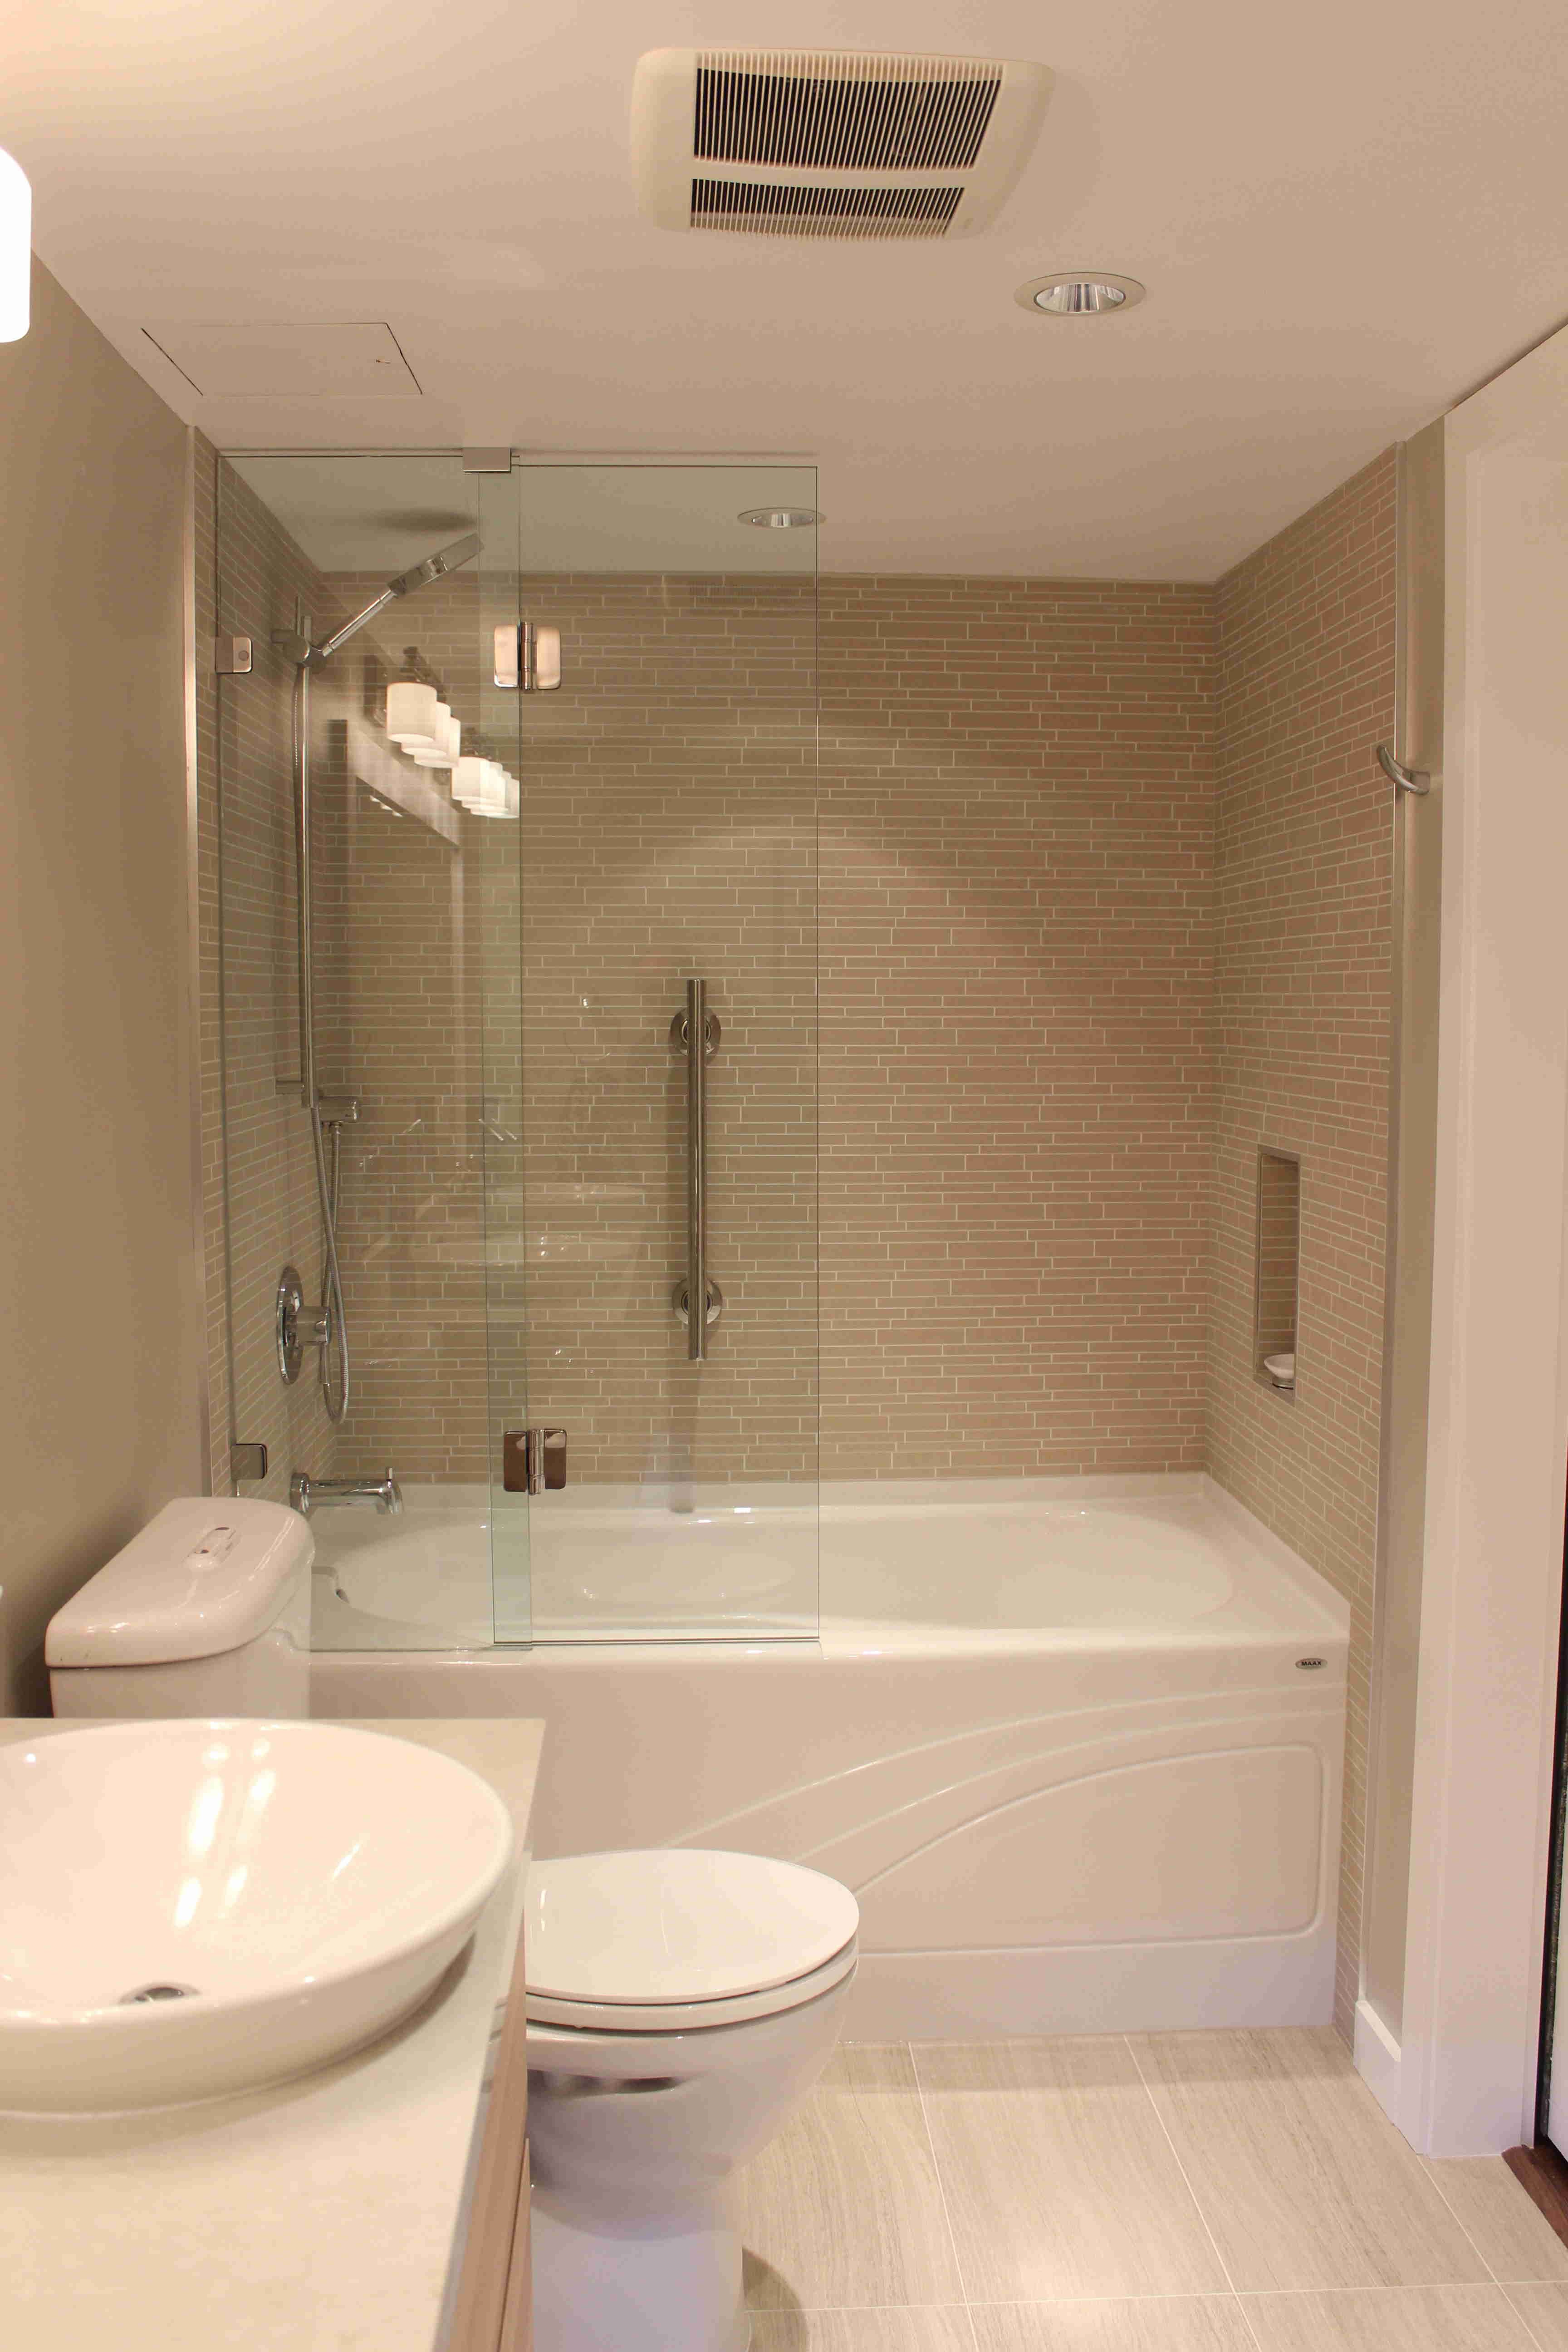 Check Out This Contemporary Master Bathroom Remodel In A False Creek Condo In Vancouver Let